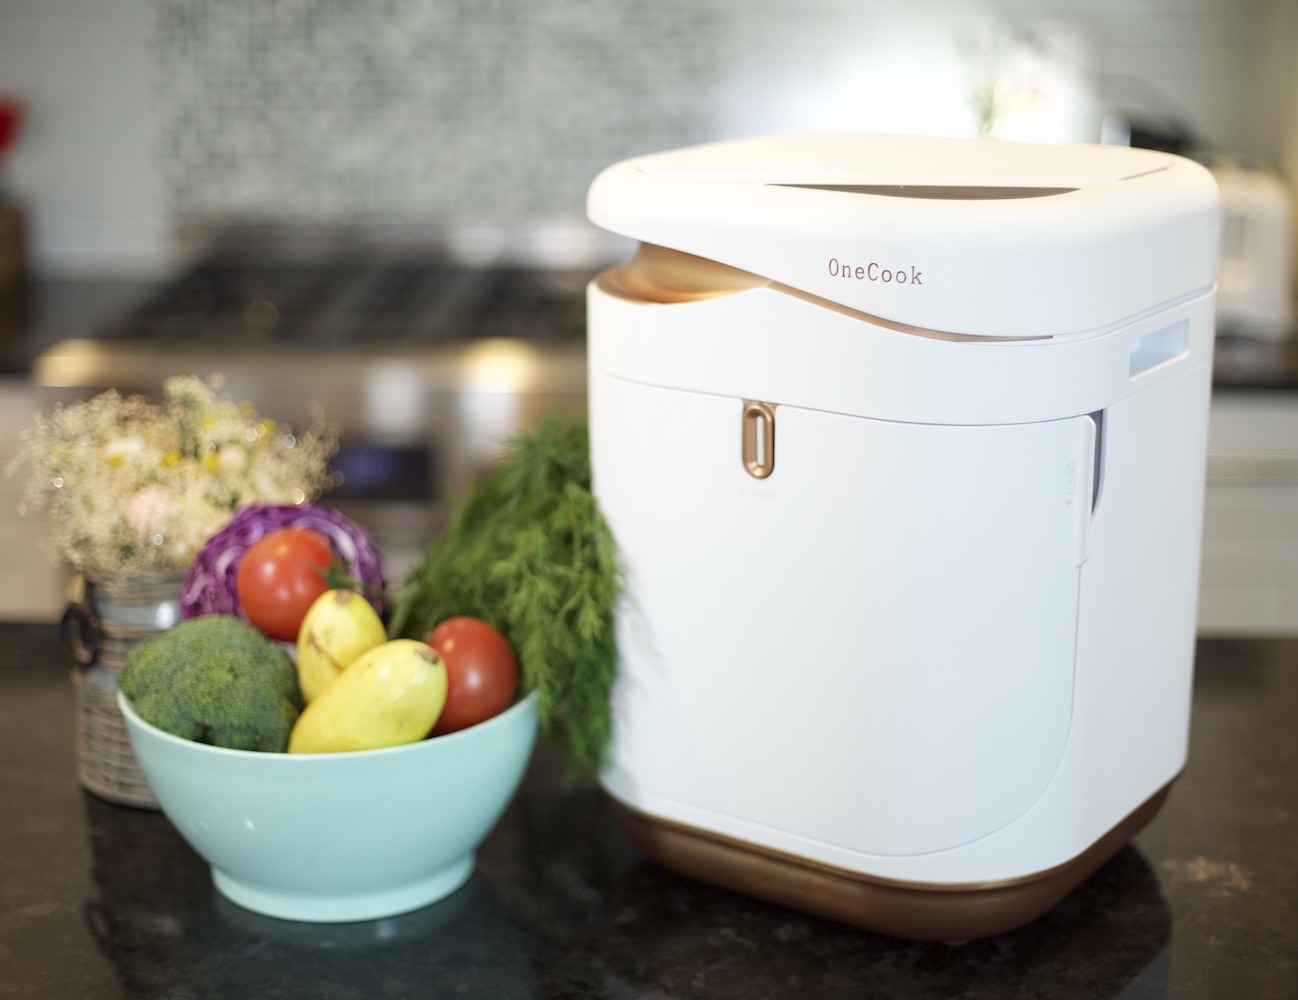 OneCook – The Robotic Private Chef to Free Your Cooking Time